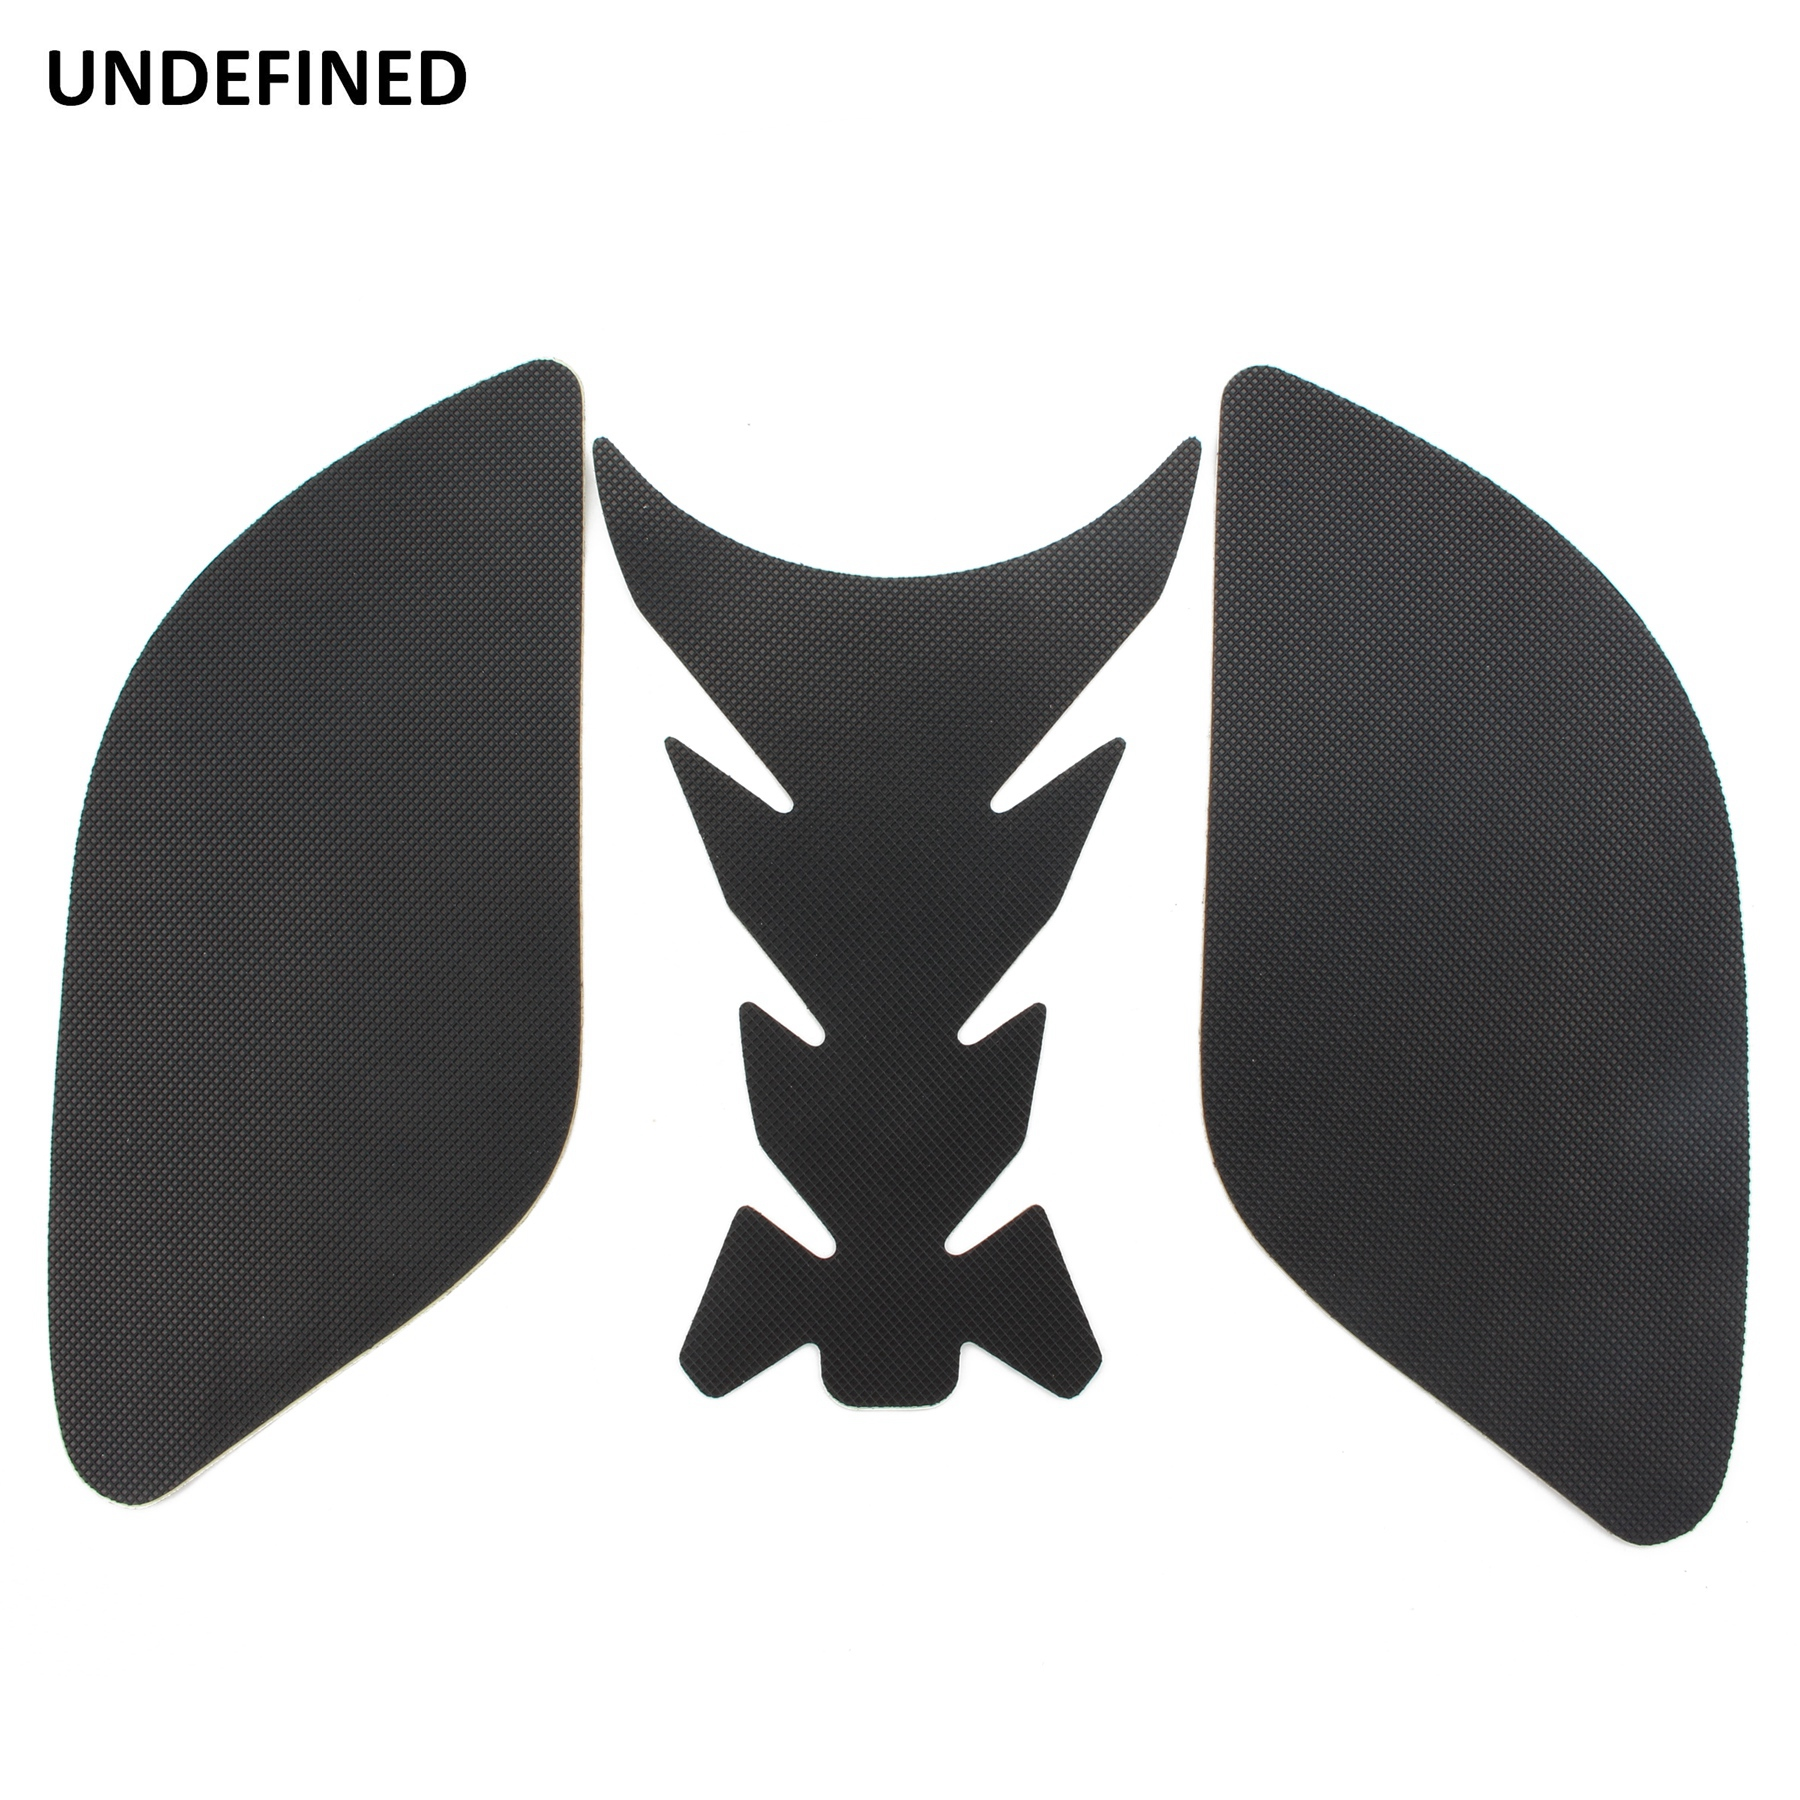 Motorcycle Fuel Gas Tank Pad Anti Slip Protector Stickers Knee Grip Side Decals For Yamaha R15 YZF R15 2017 2018